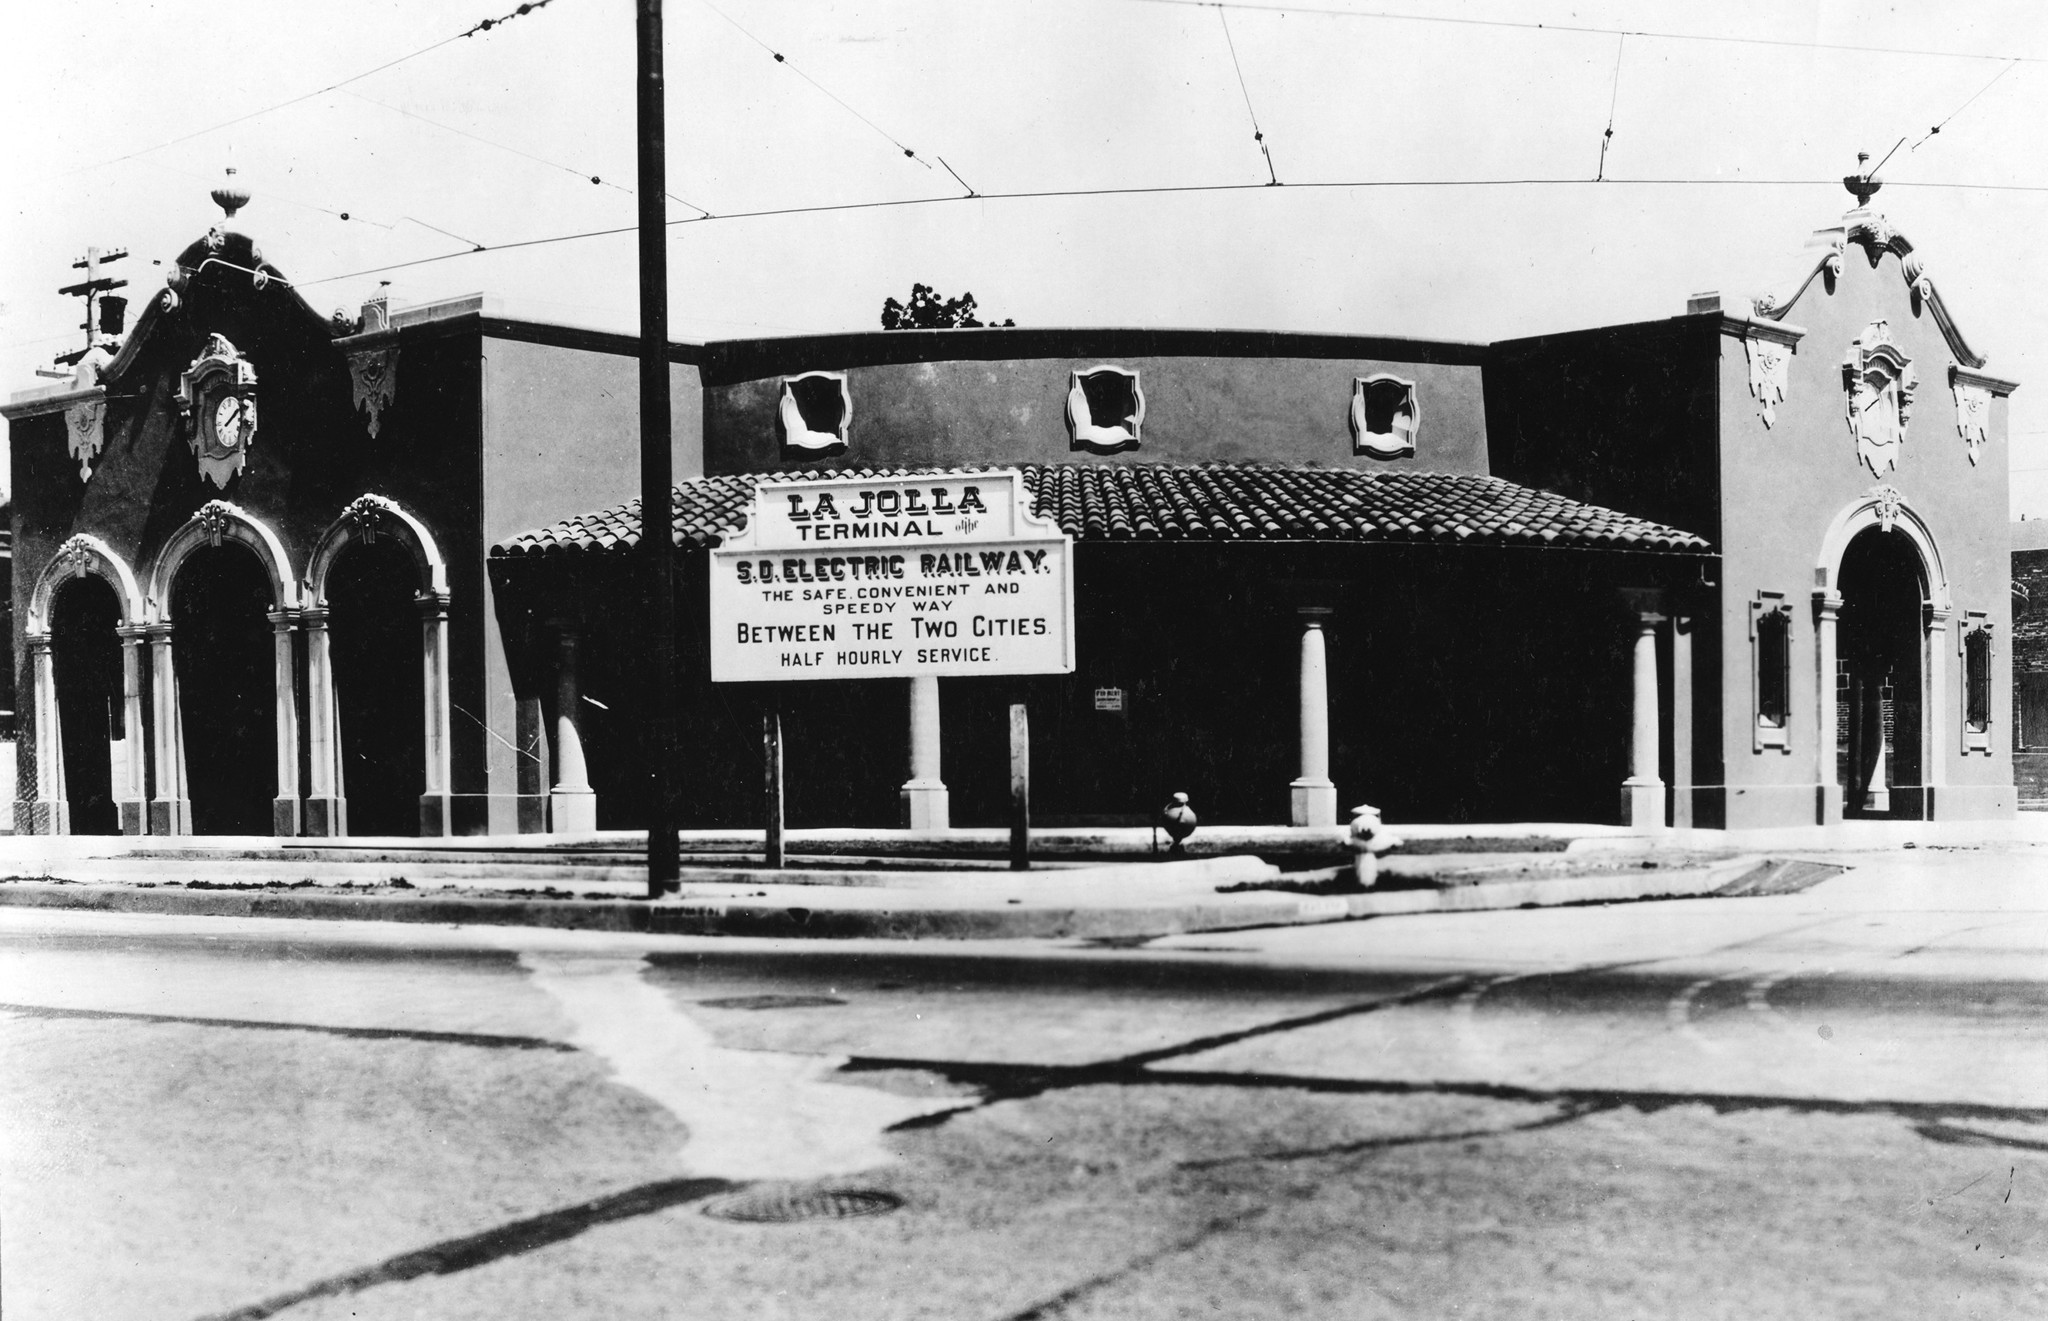 The San Diego Electric Railway's northernmost terminus at the Arcade Depot on La Jolla.